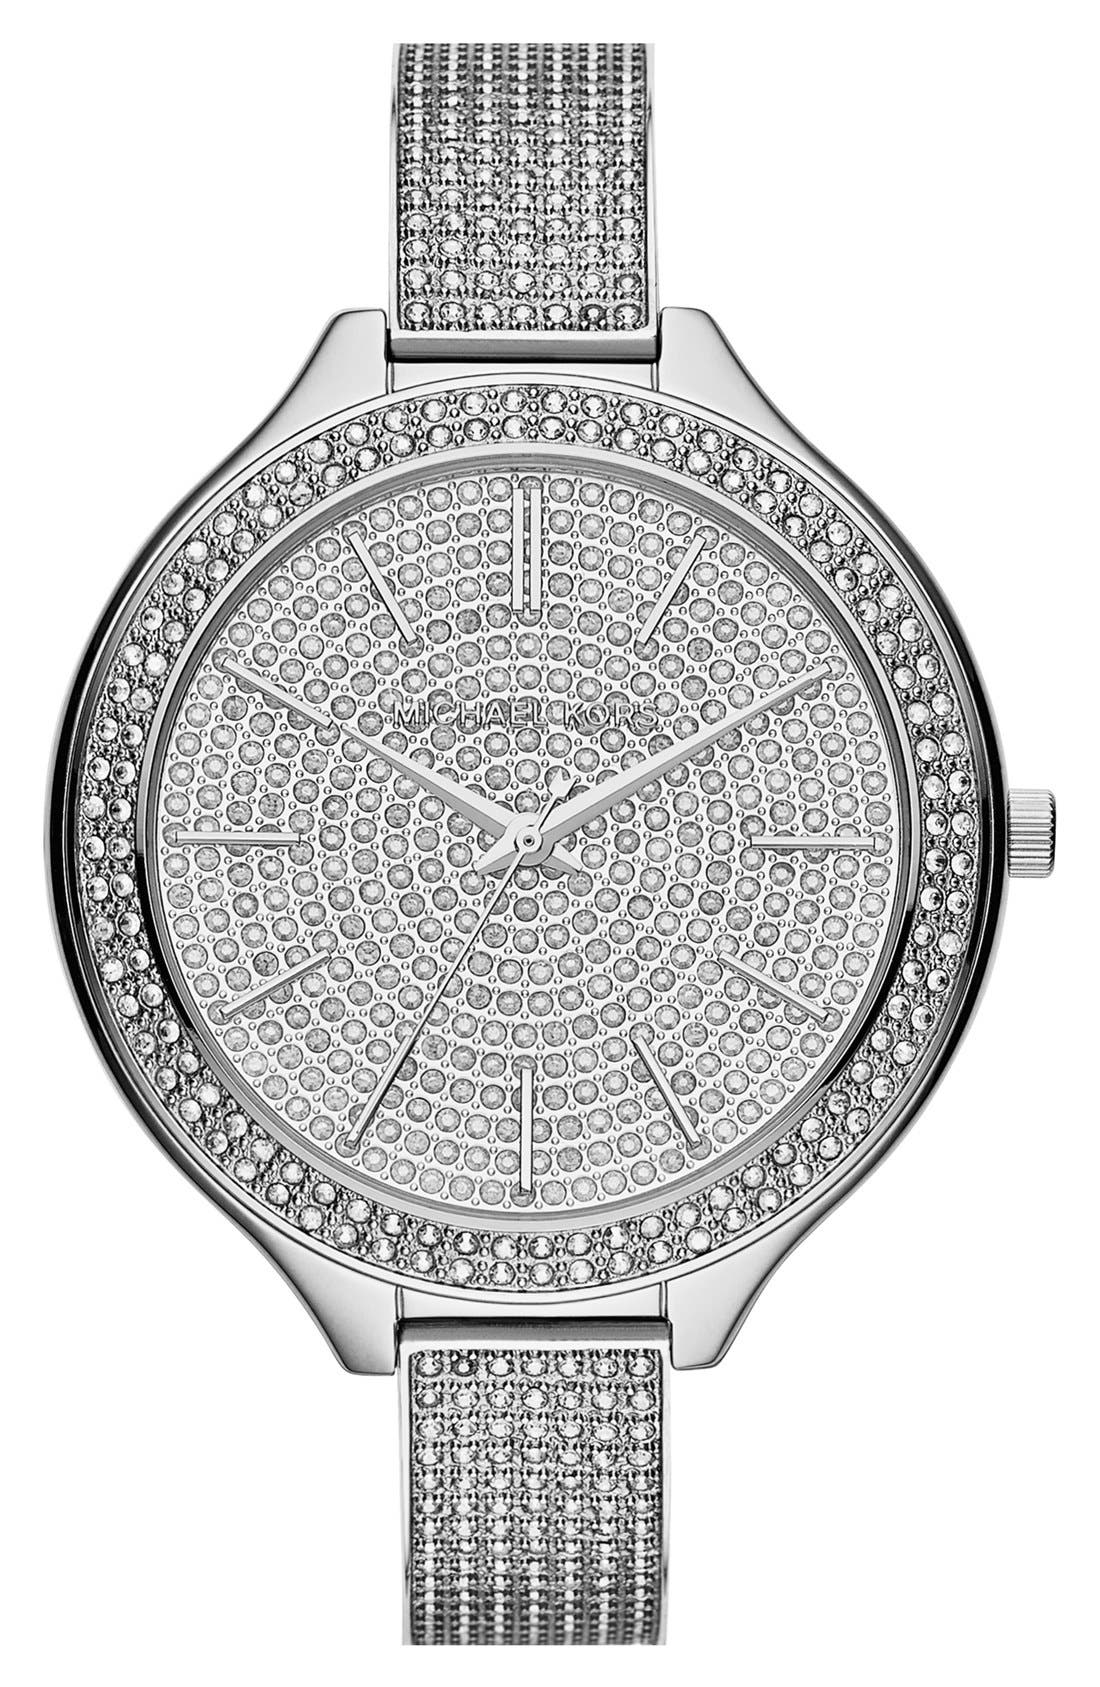 Main Image - Michael Kors 'Slim Runway' Pavé Crystal Bangle Watch, 43mm